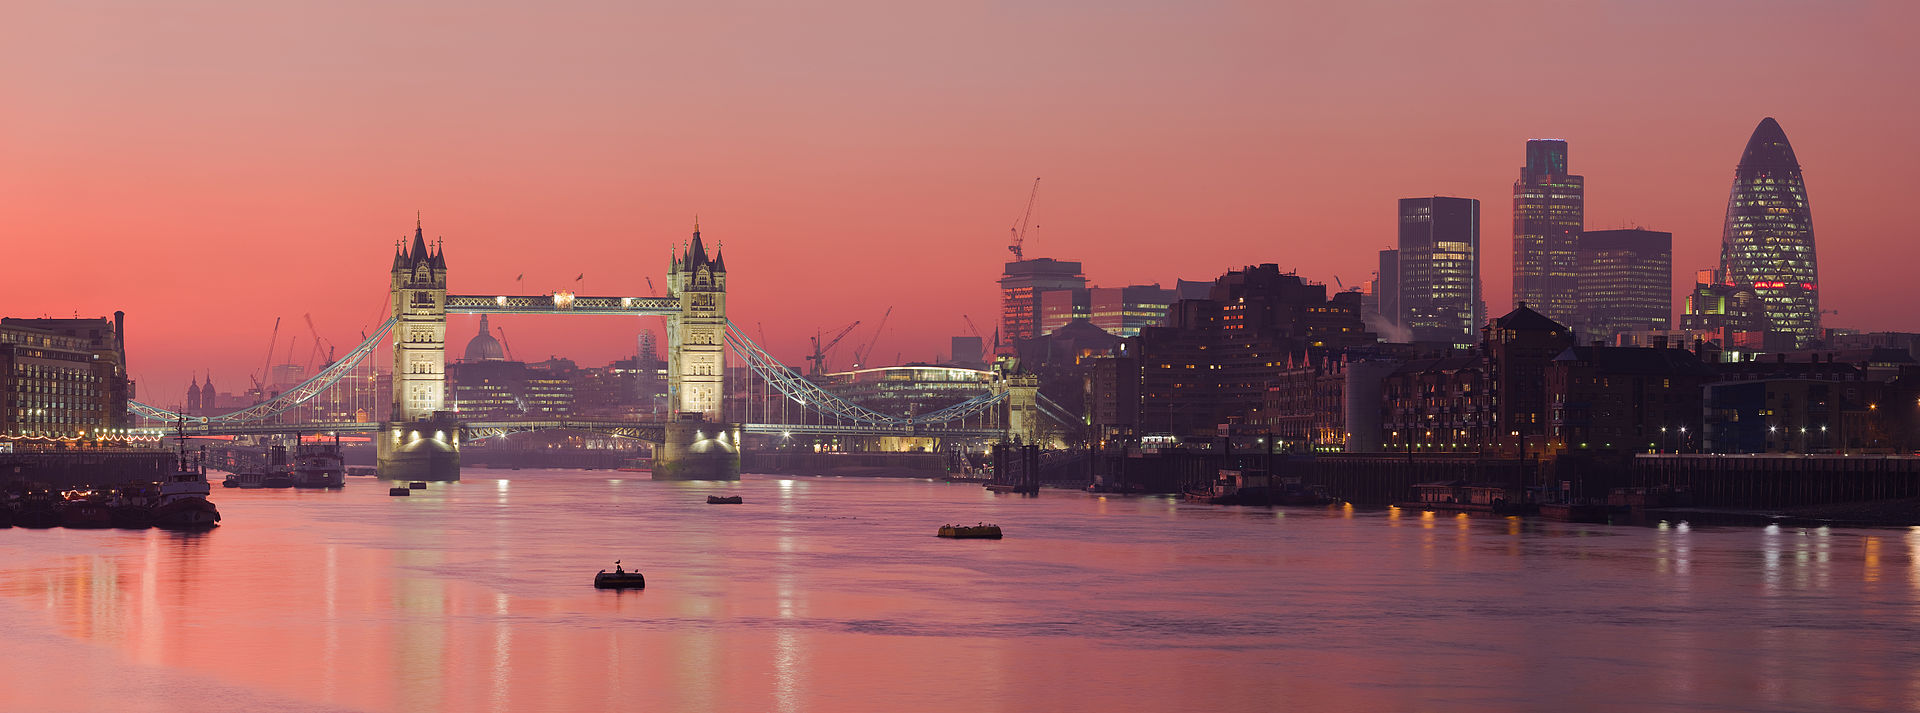 1920px-London_Thames_Sunset_panorama_-_Feb_2008